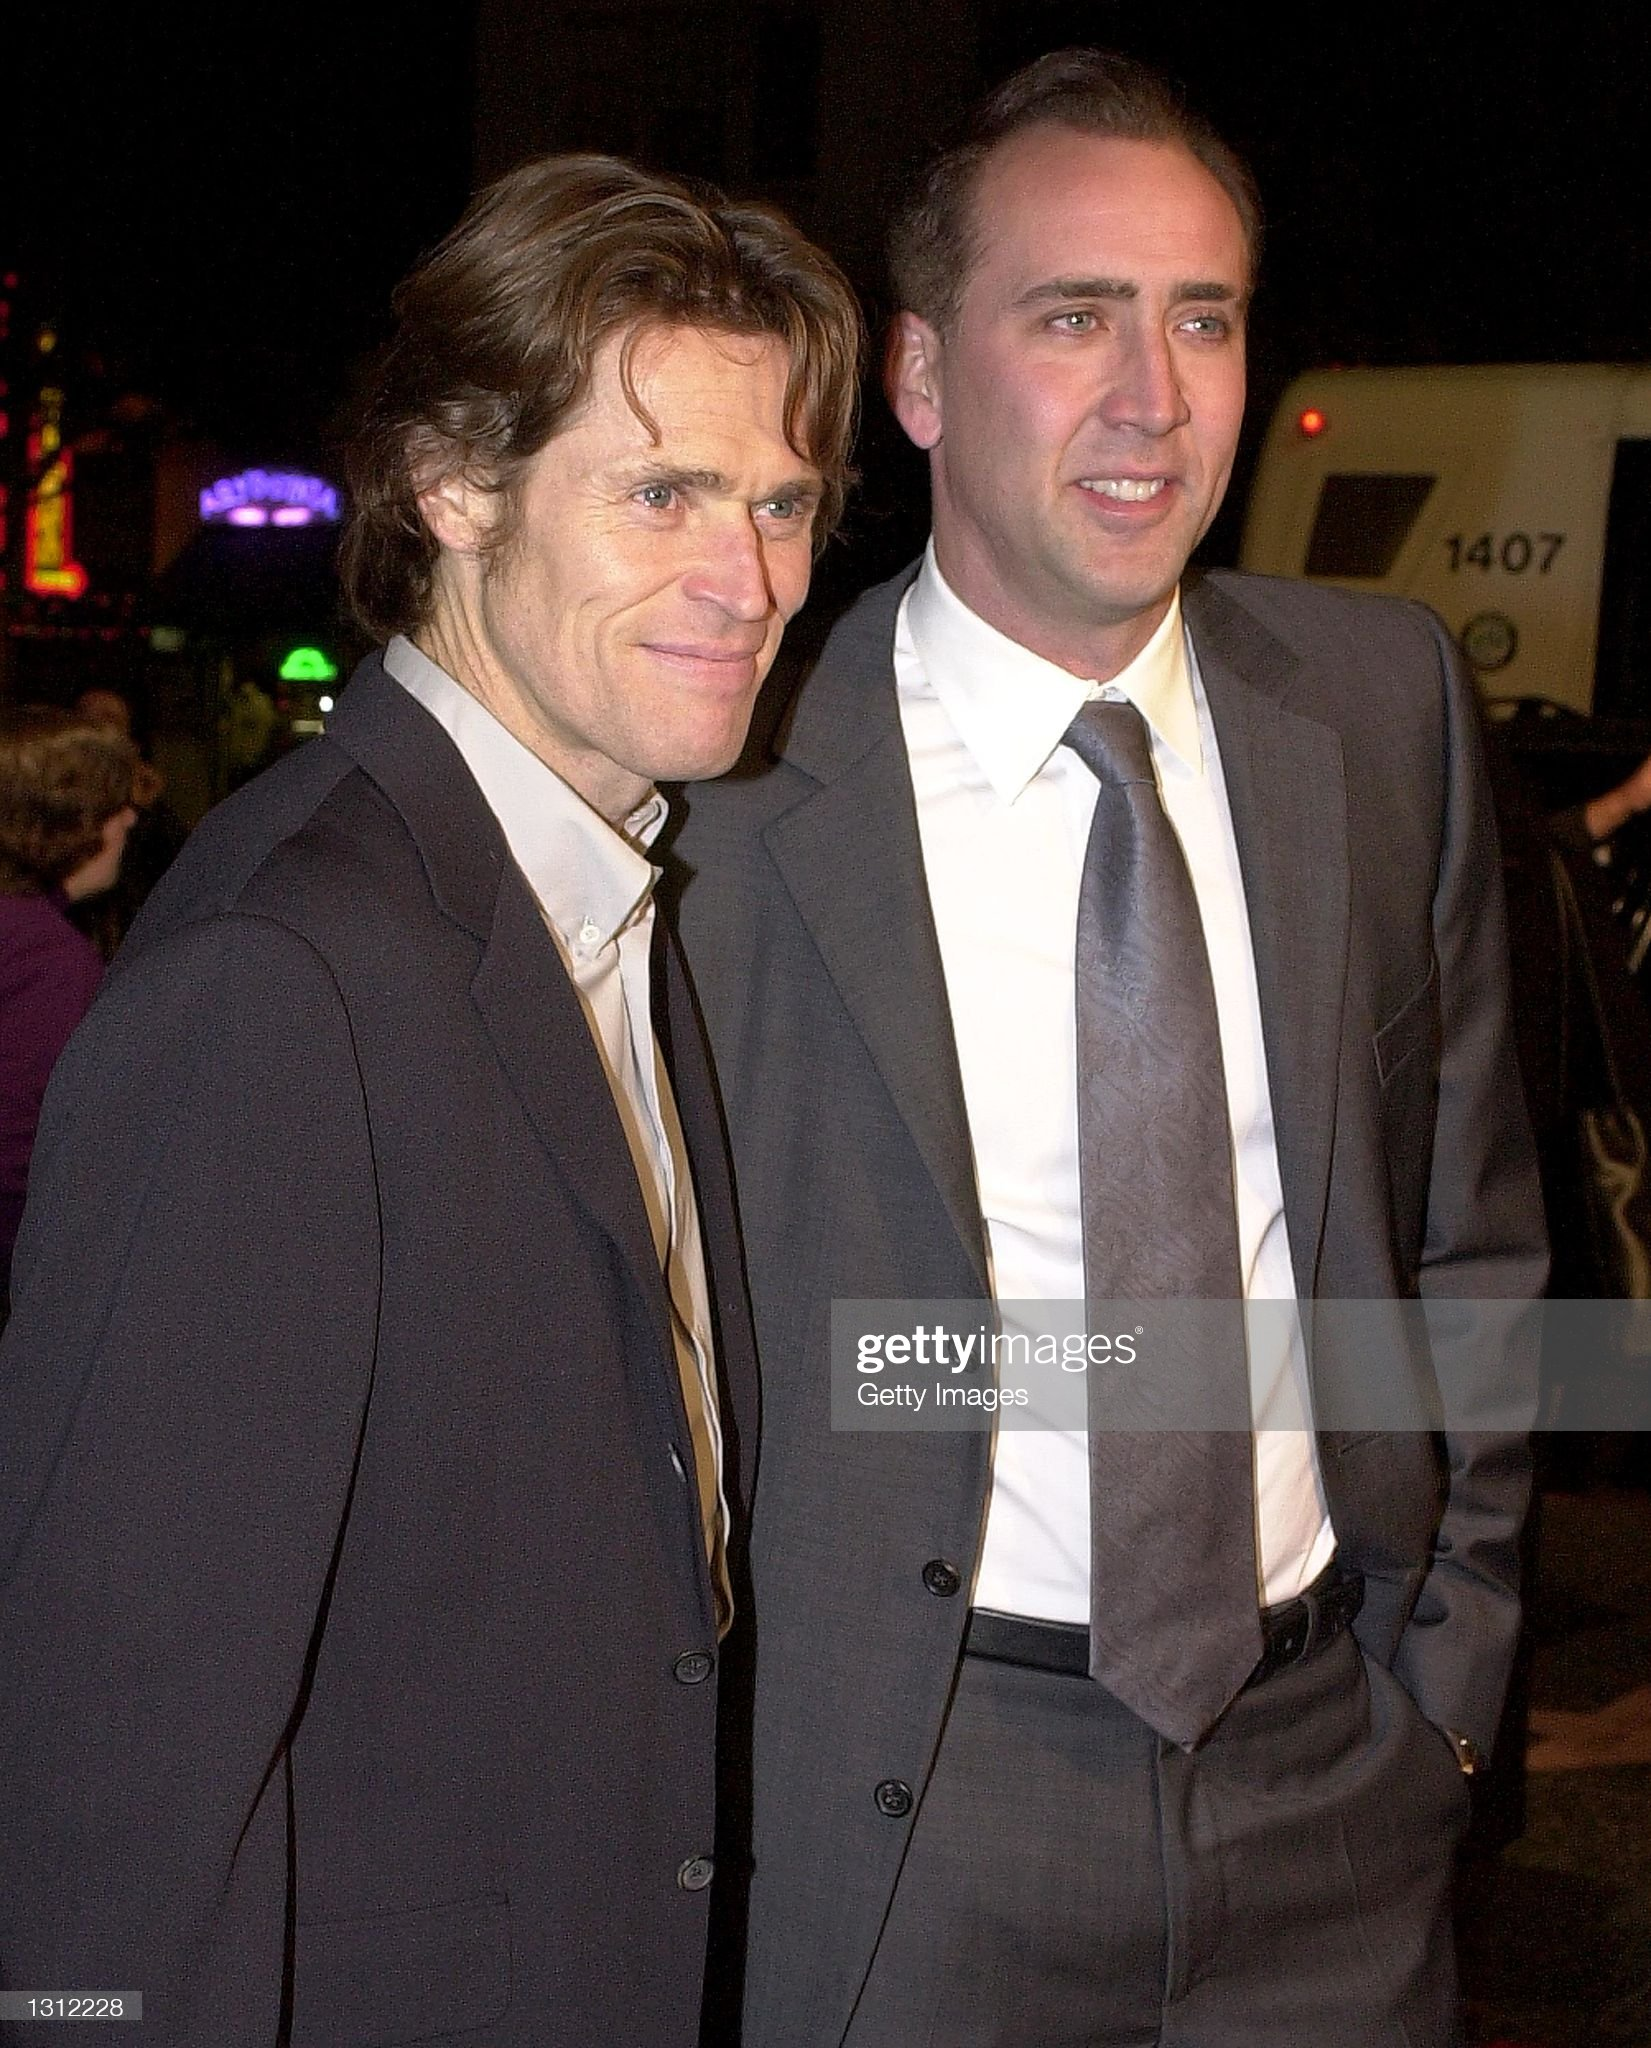 ¿Cuánto mide Willem Dafoe? - Altura - Real height Actor-willem-dafoe-left-talks-with-producer-nicolas-cage-as-they-at-picture-id1312228?s=2048x2048